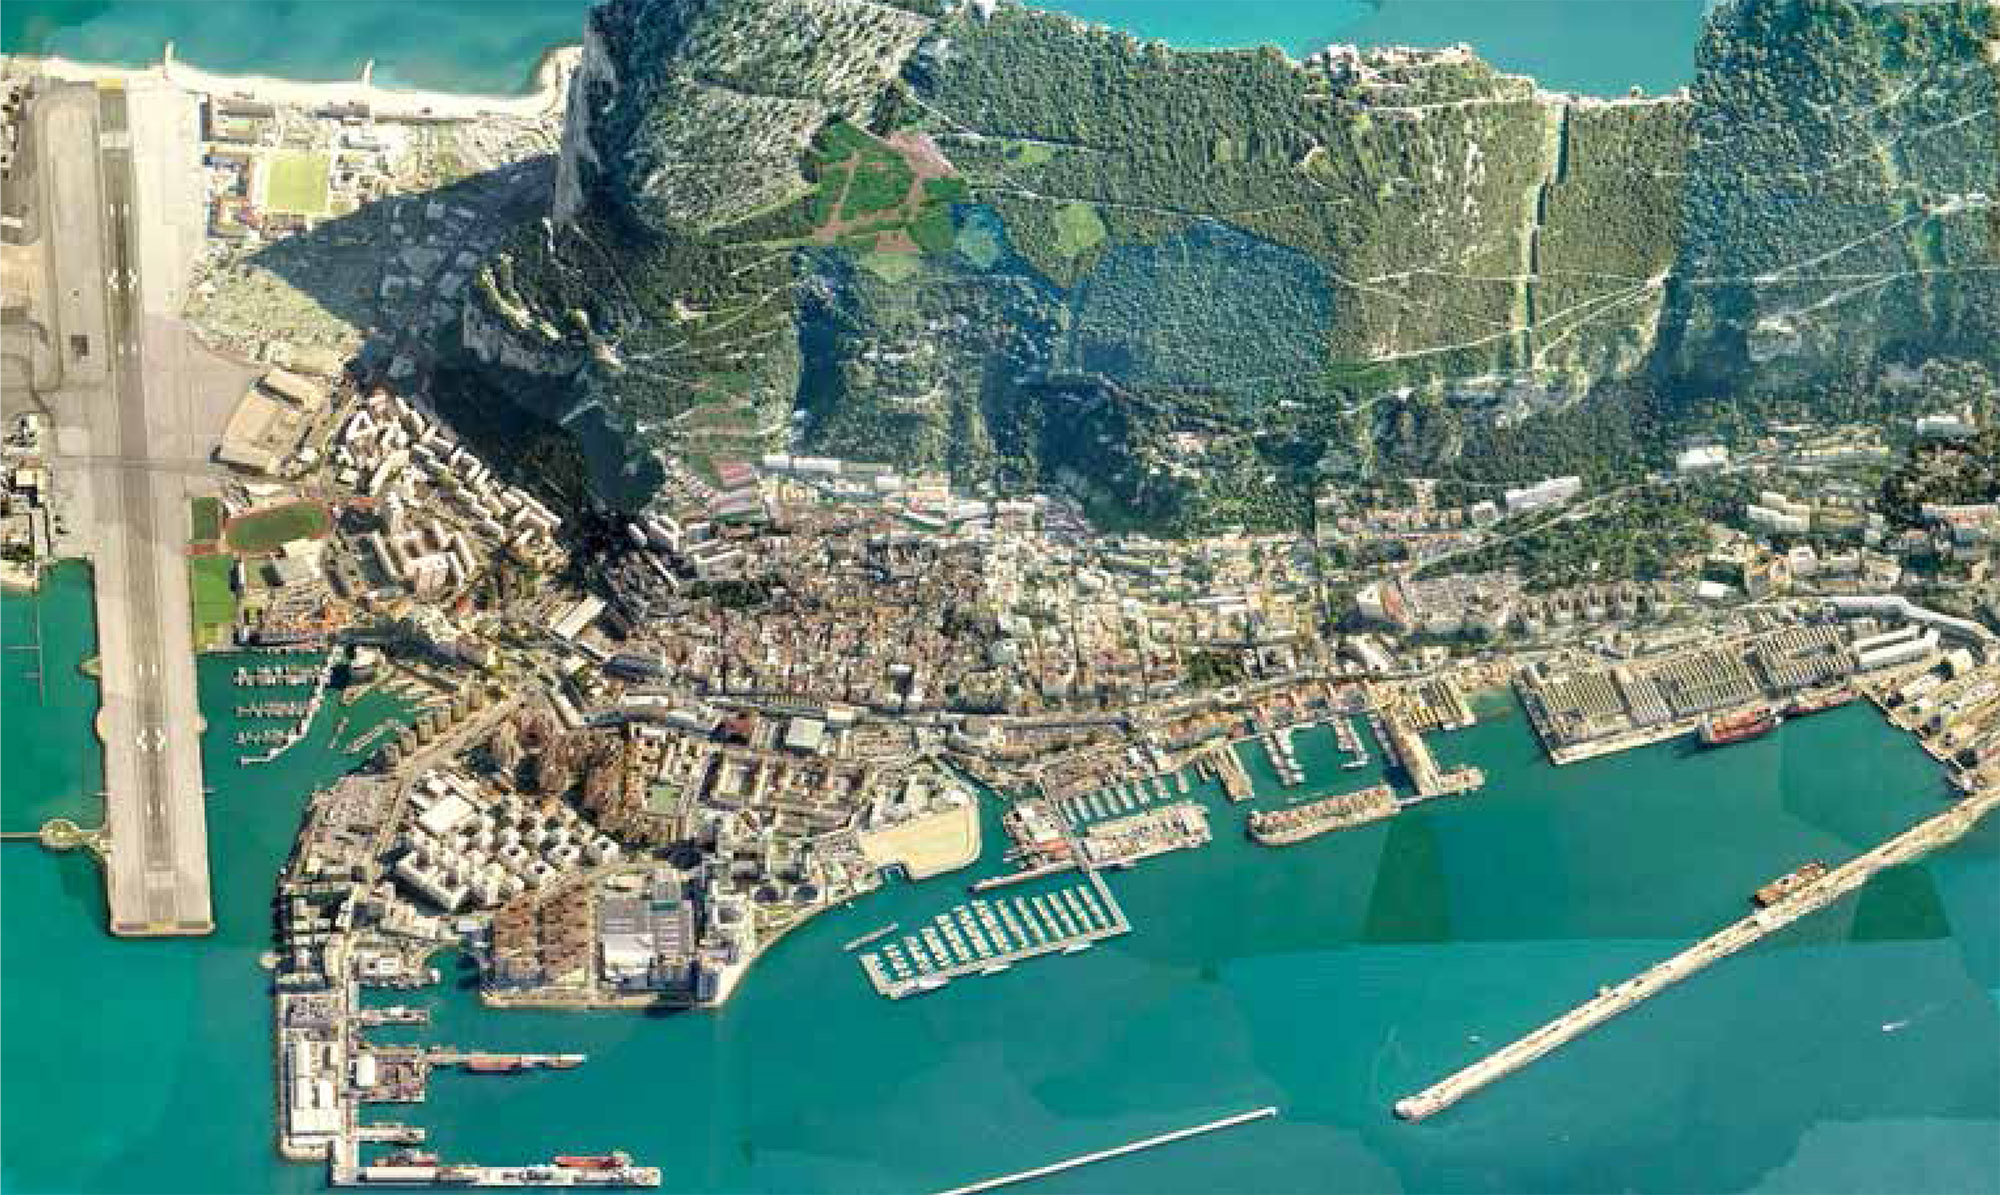 Powerpoint Rollout Plan Template as well Motherboard Parts also Three Phase Y Delta Configurations likewise Watch likewise Small Boat Marina Gibraltar. on three phase power